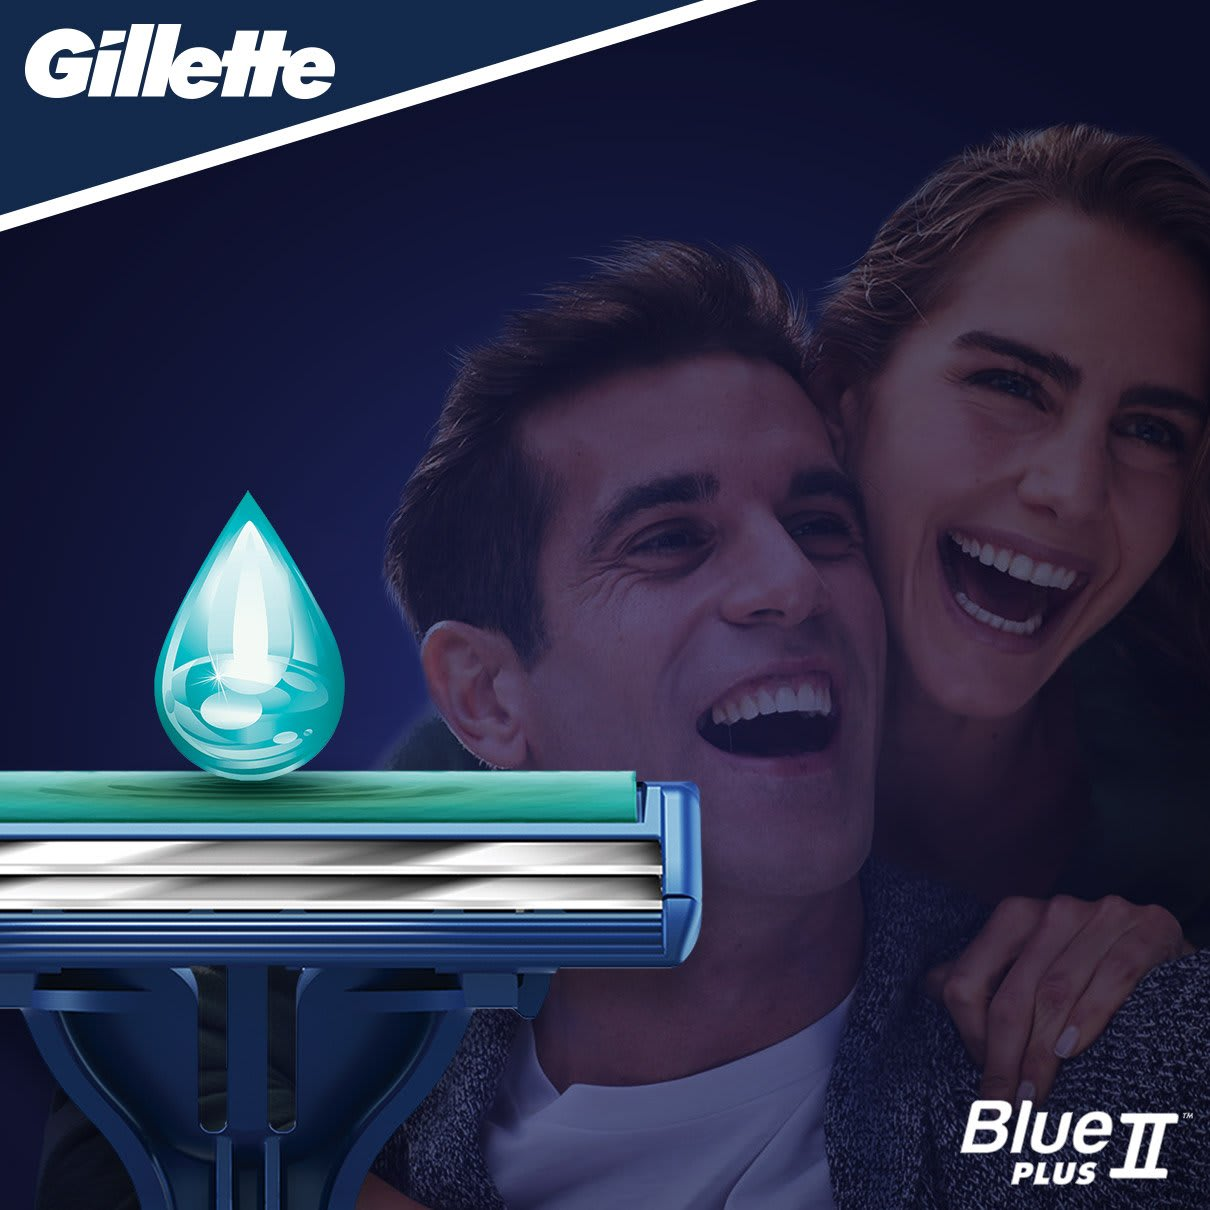 Gillette BlueII Plus Slalom Rasoio Da Uomo Usa E Getta